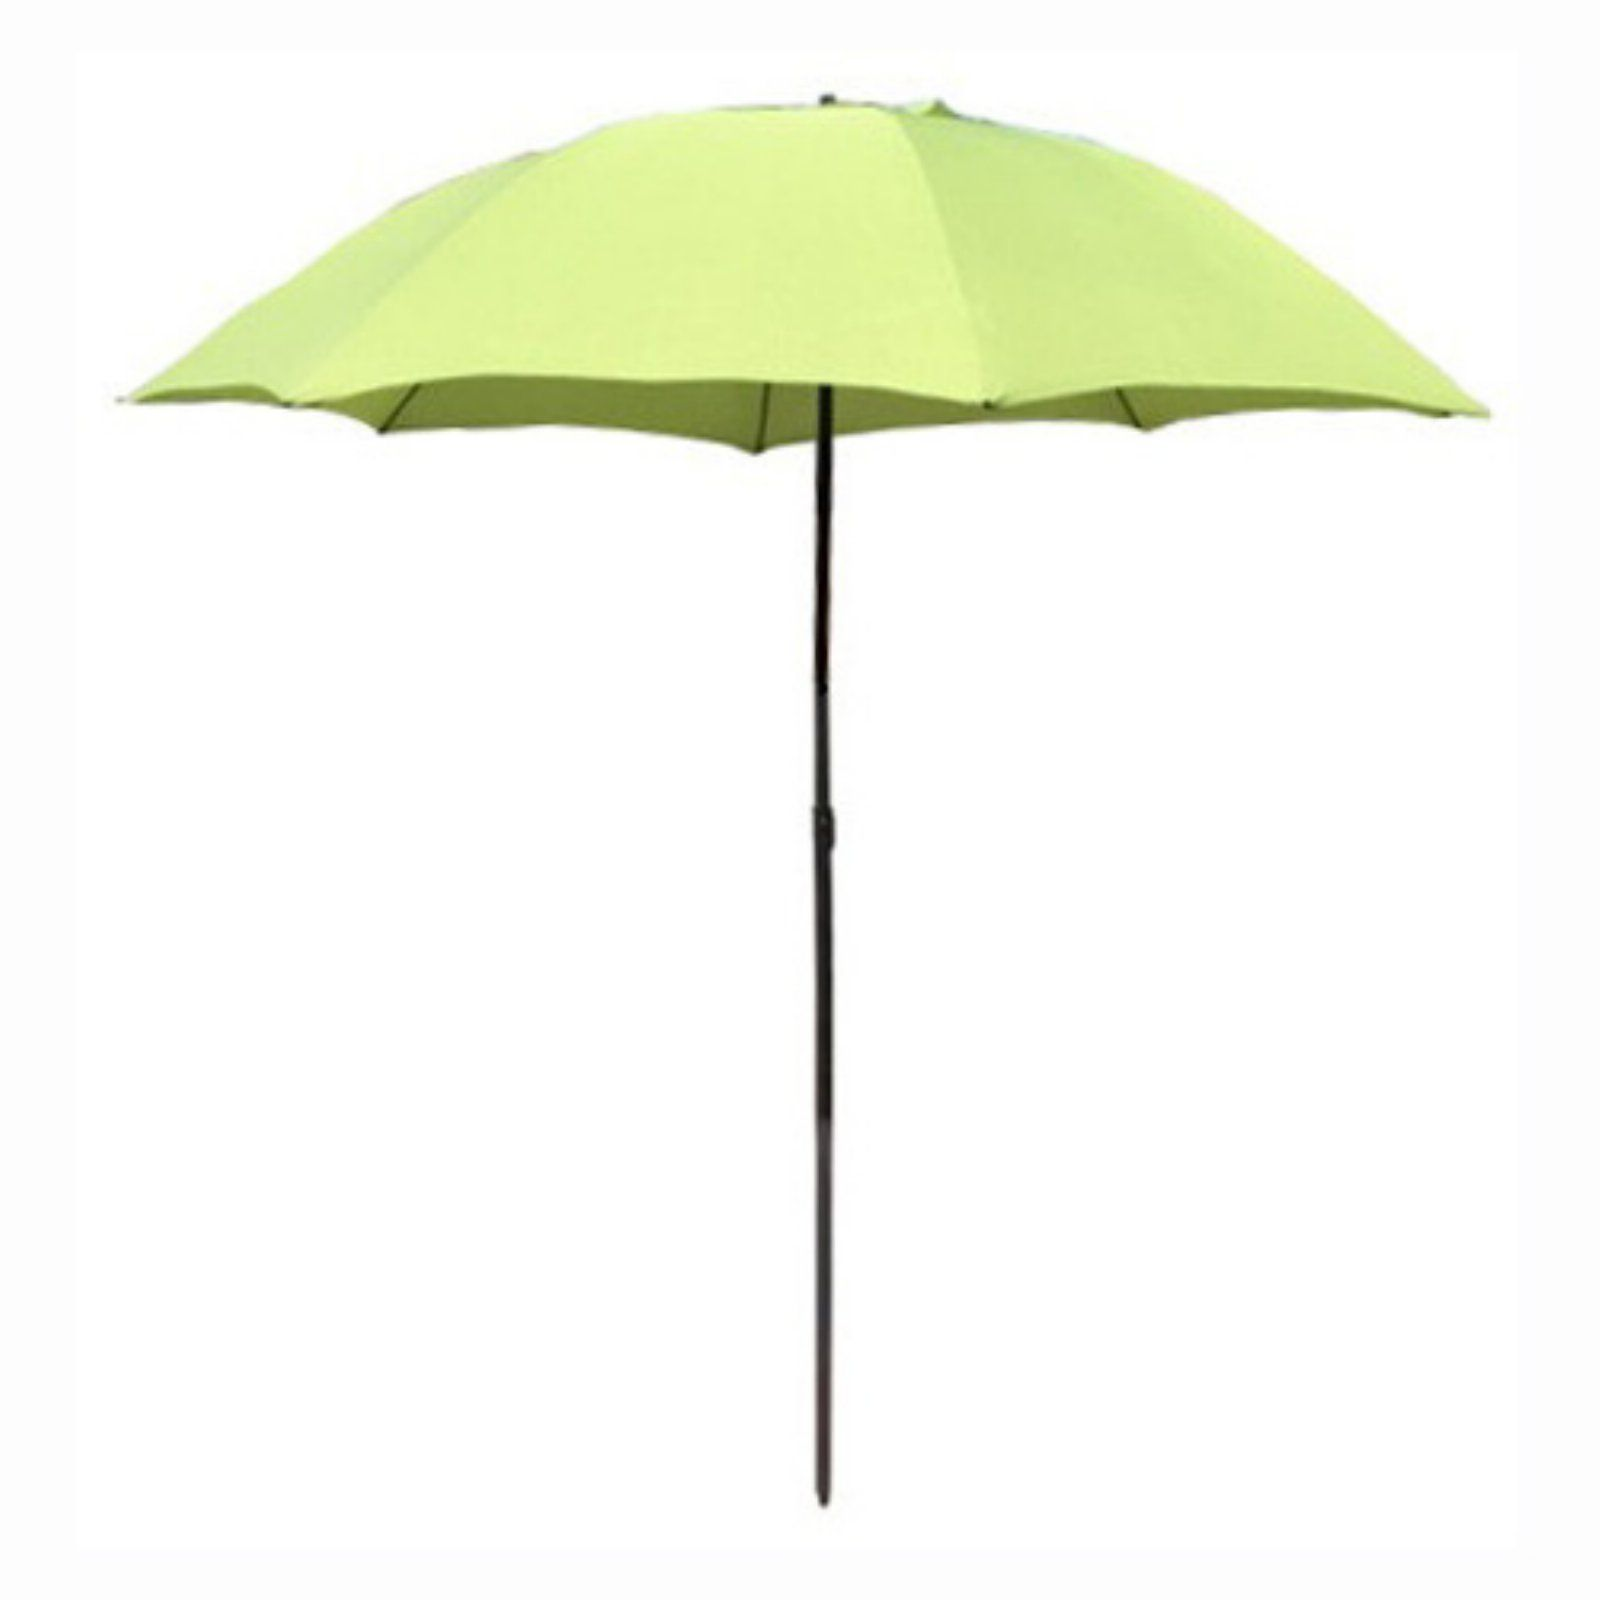 MAOS 8 ft. Beach and Garden Extra Large Umbrella - Set of 2 Lime Green #largeumbrella